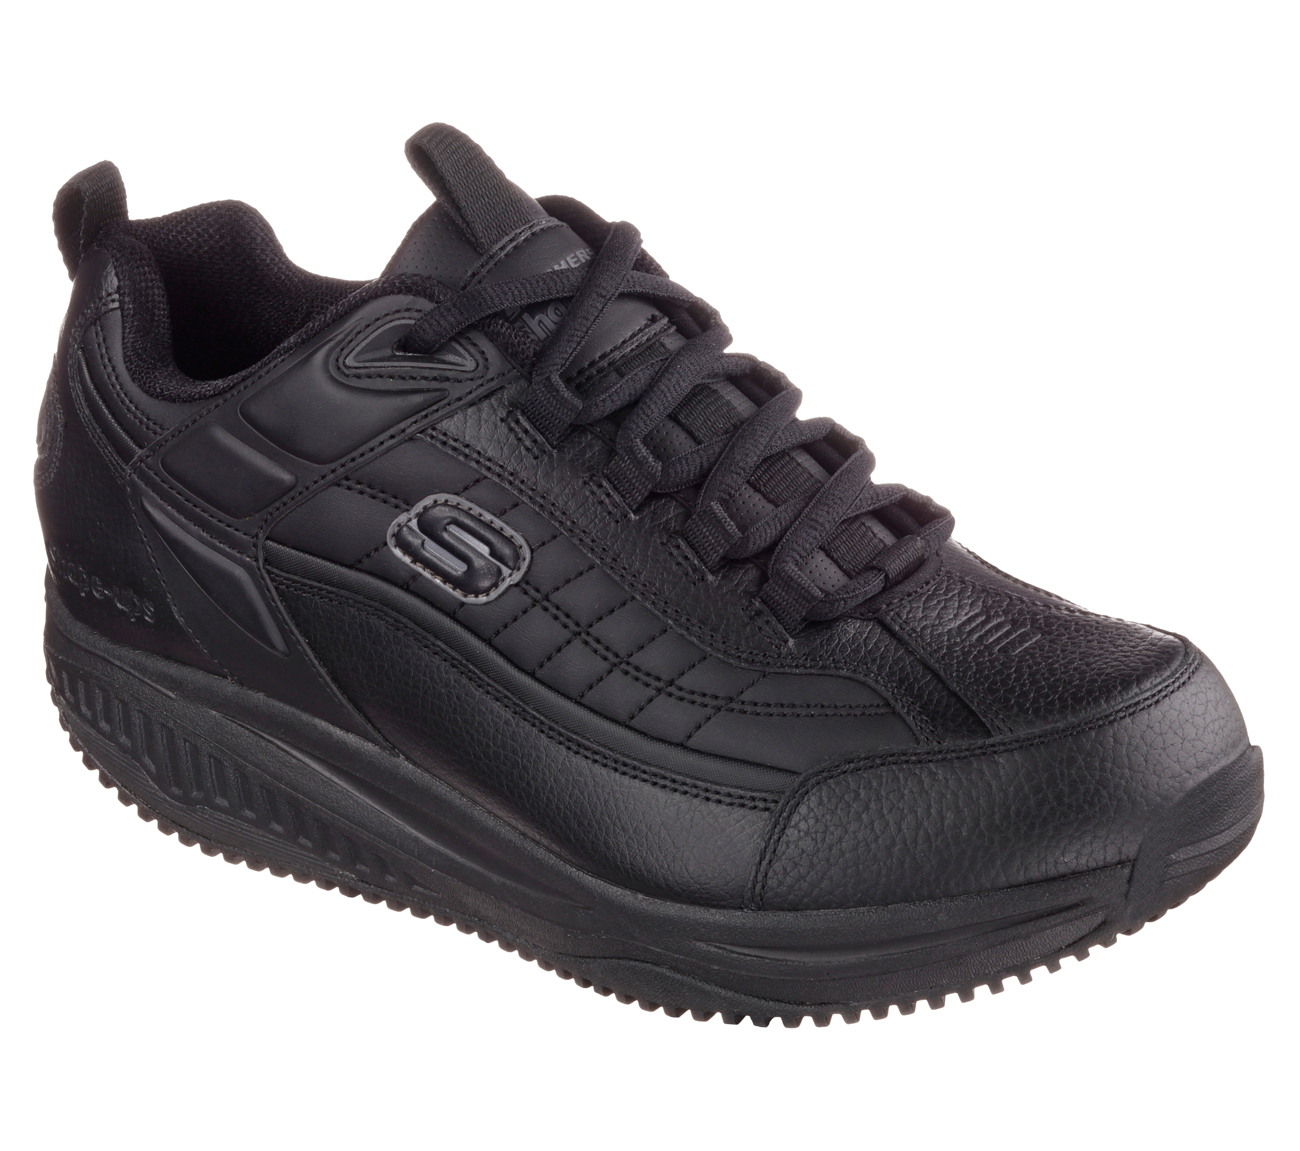 Compare Prices on Good Work Shoes- Online Shopping/Buy Low Price